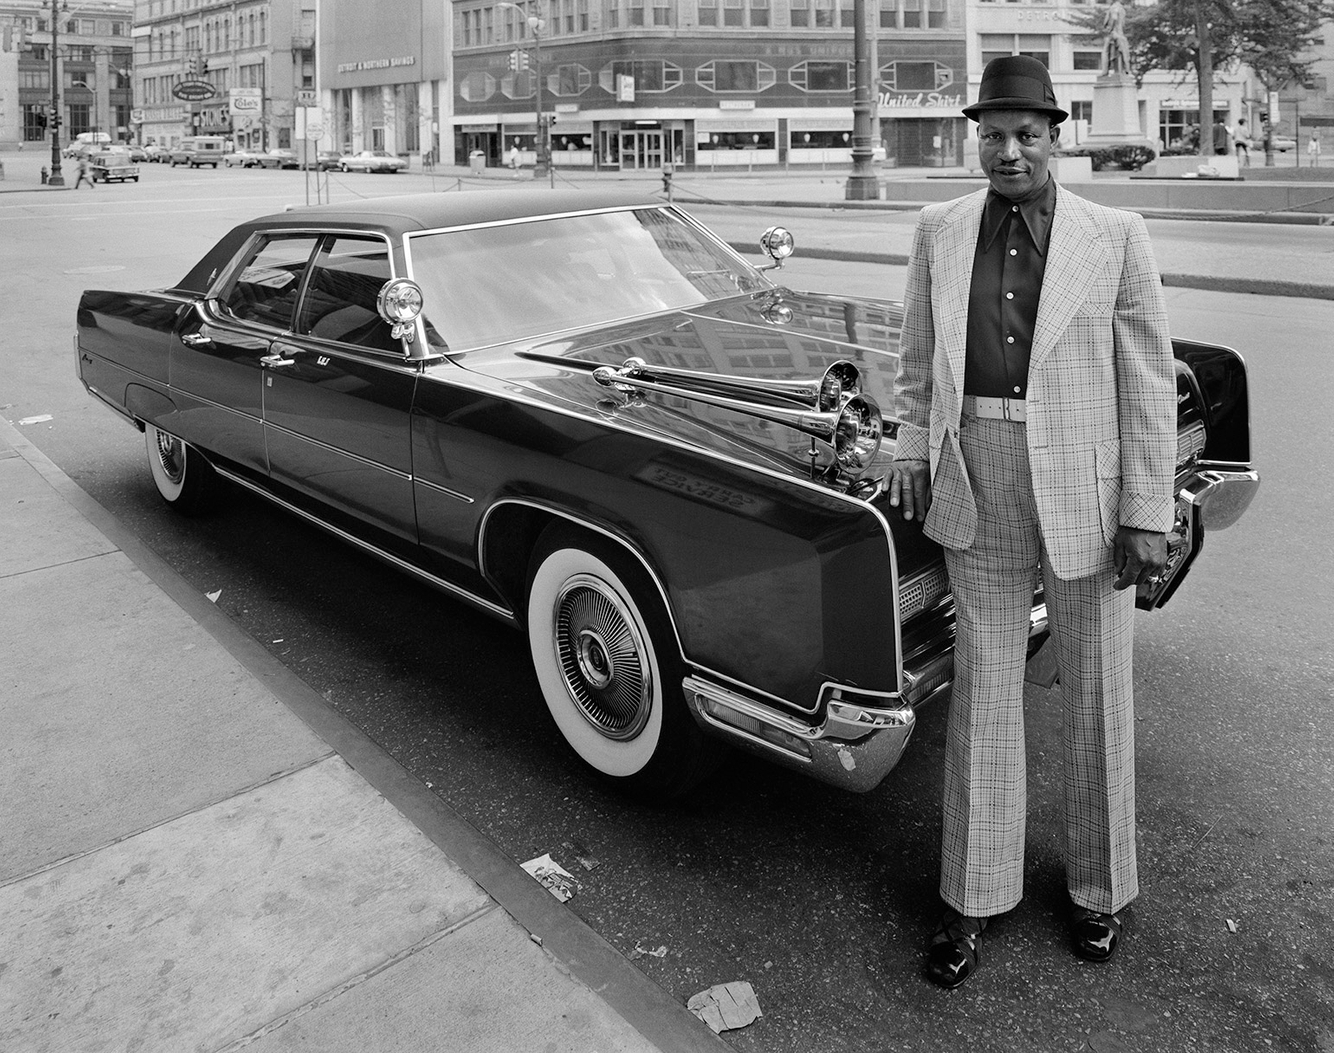 Lawrence Jackson w/his Lincoln on Griswold St., Detroit, 26 May 74